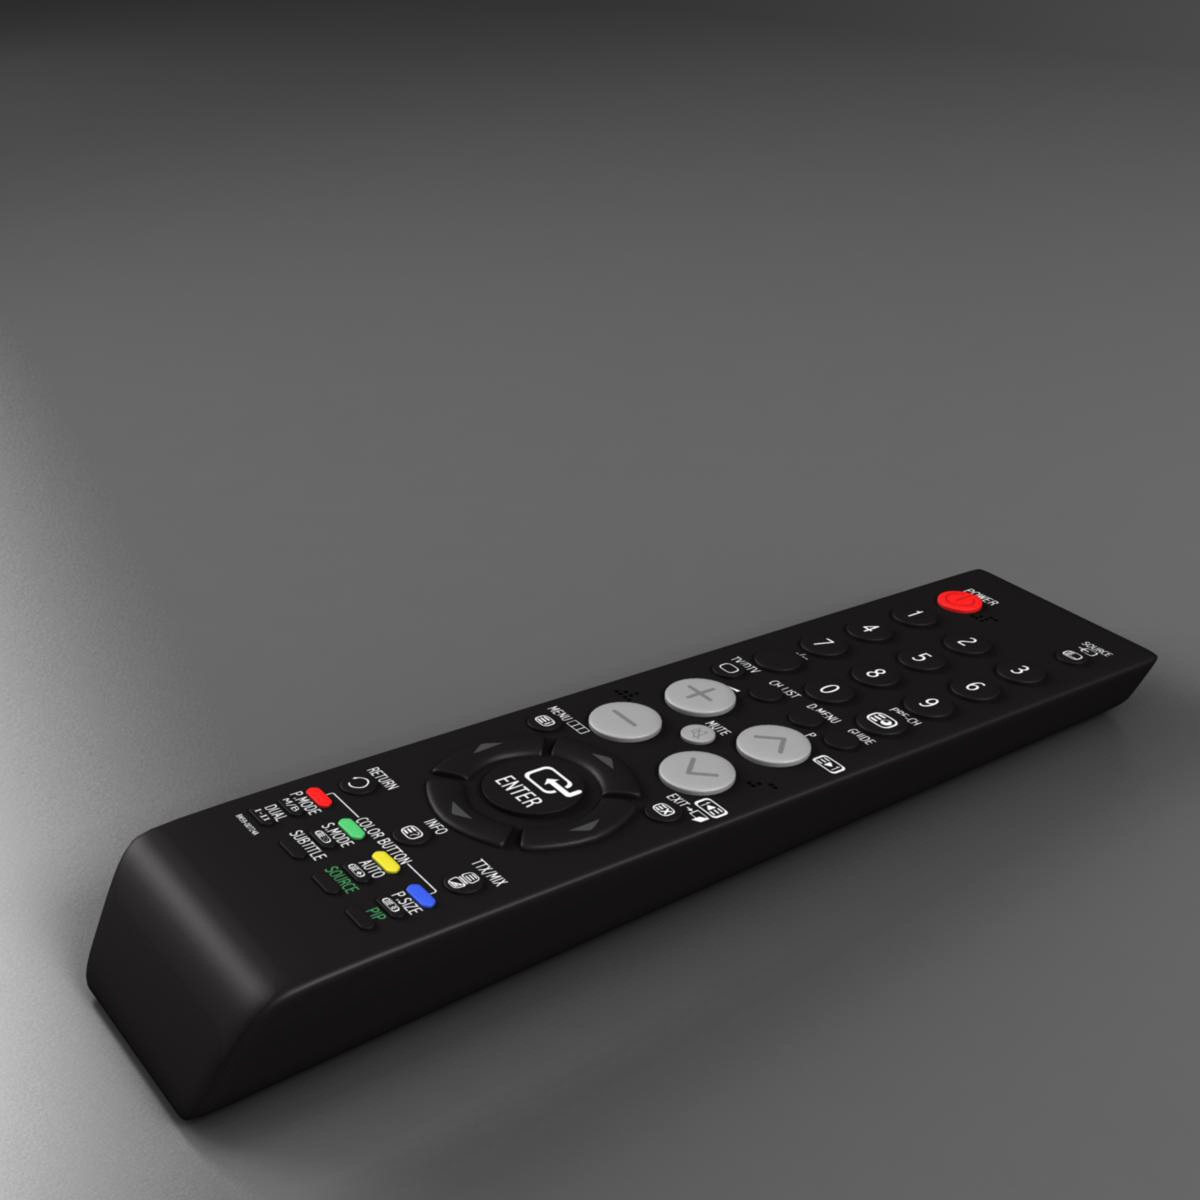 tft remote control 3d model 3ds max fbx ma mb obj 155949